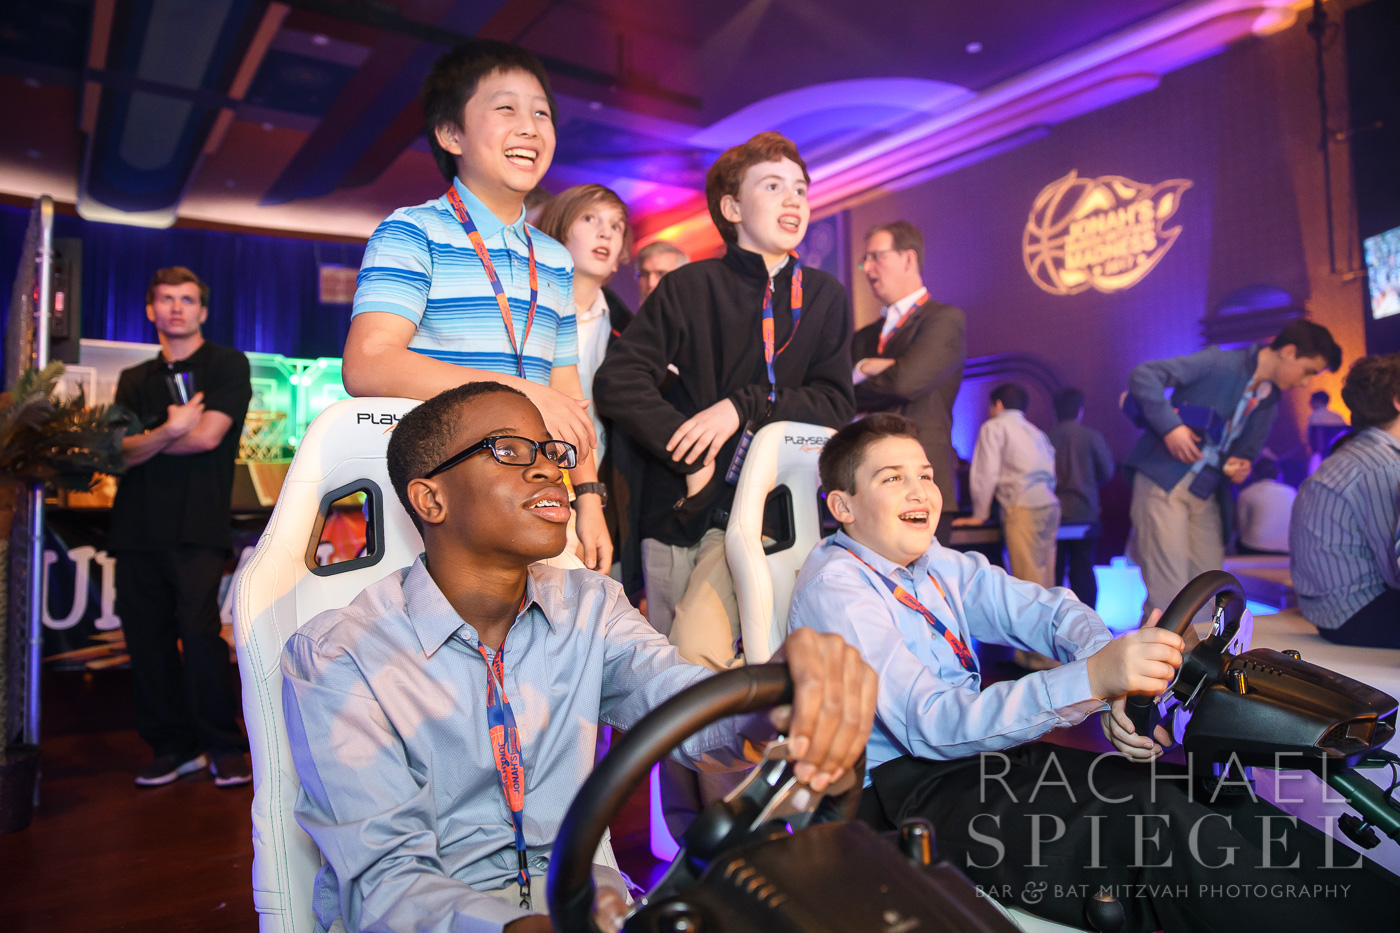 Rachael Spiegel Photography  specializes in modern  B'nai Mitzvah photography . Our team is dedicated to telling the story of your simcha with stunning documentary images. We patiently wait to see moments unfold and illustrate the narrative of your family.